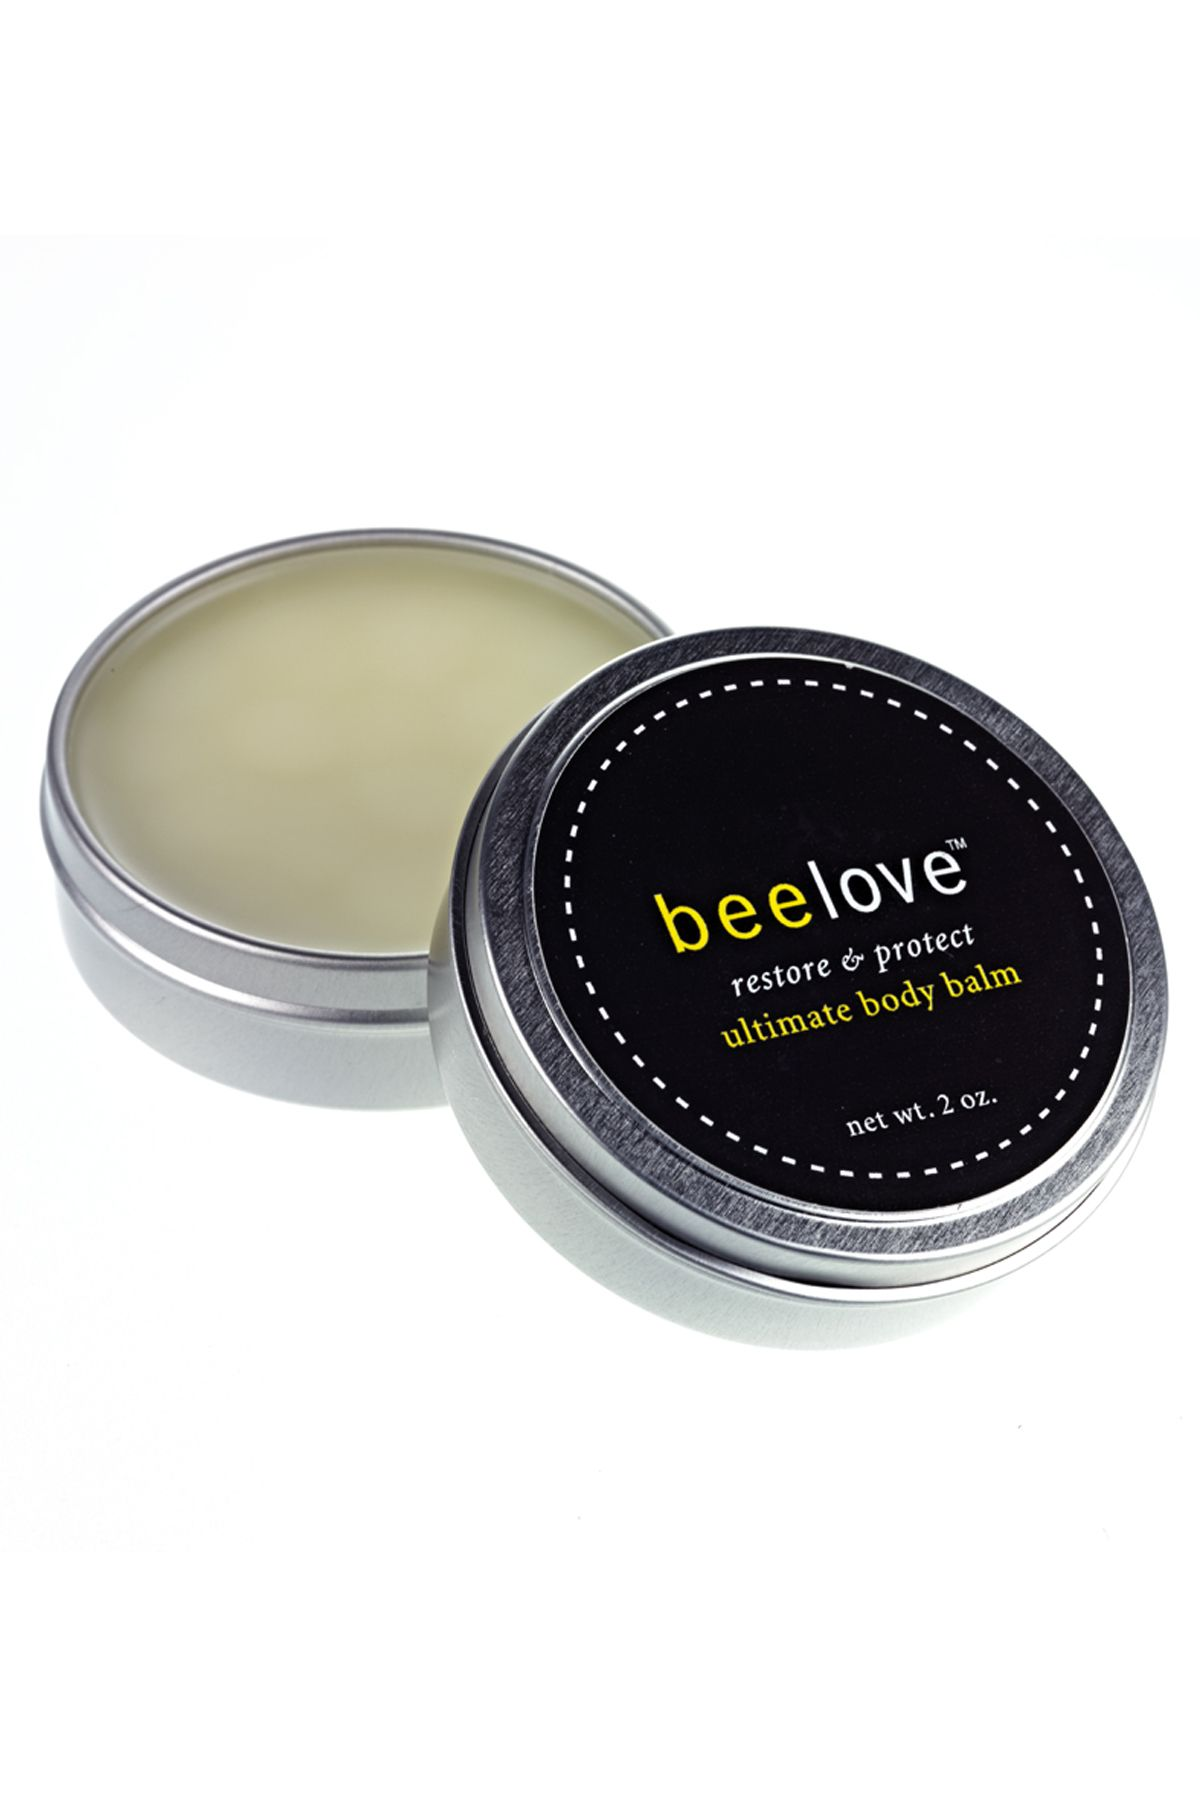 BeeLove Restore & Protect Ultimate Body BalmGifts That Give Back